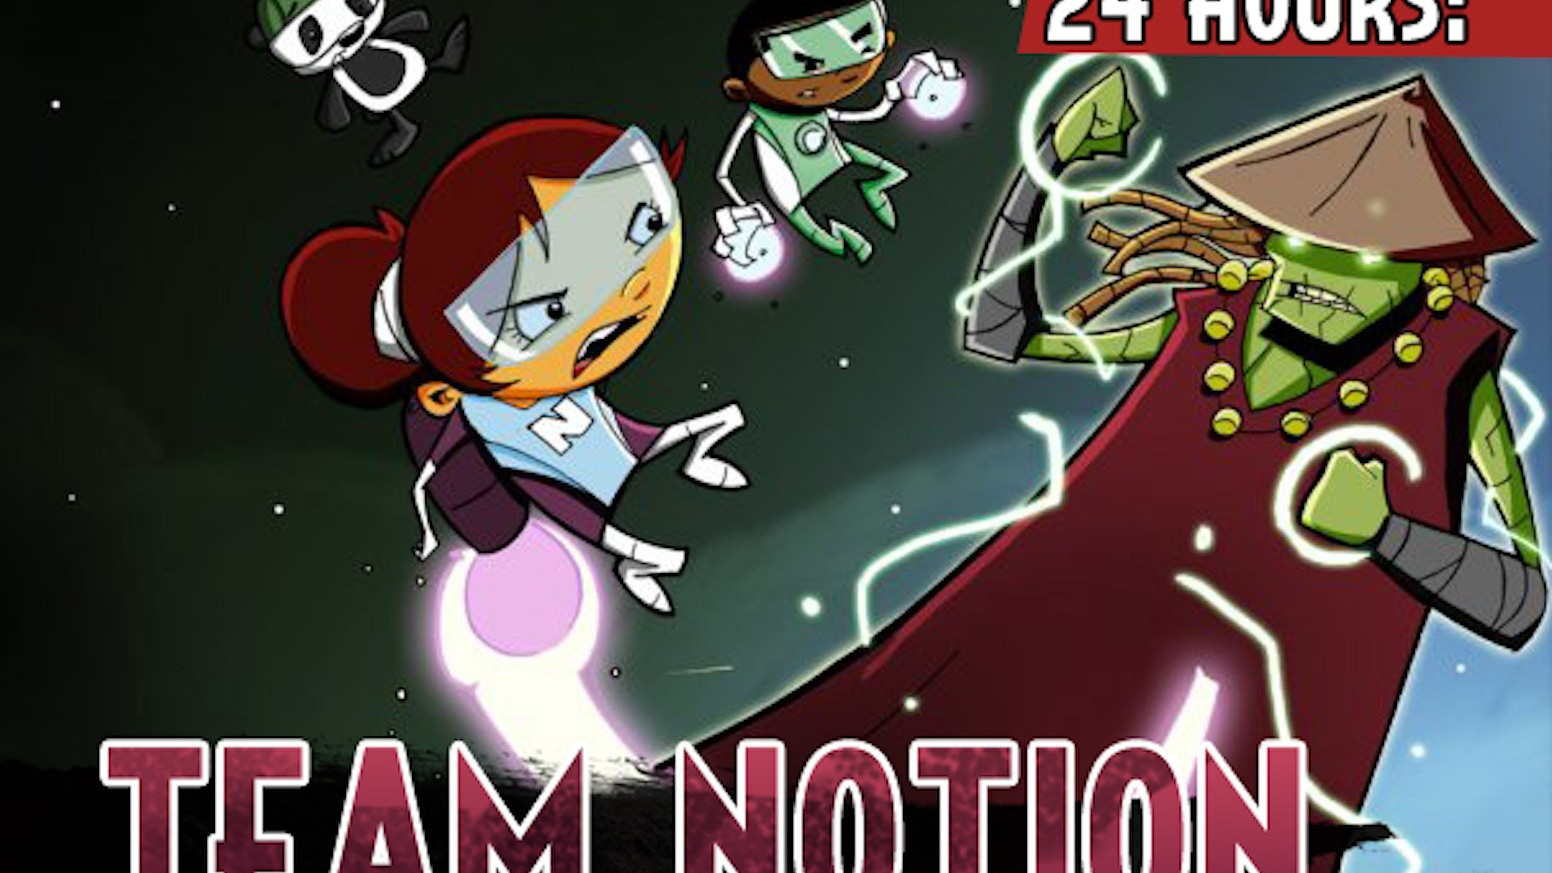 Team Notion The Game (PC/MAC/PSVITA/MOBILE) by Andrew Augustin